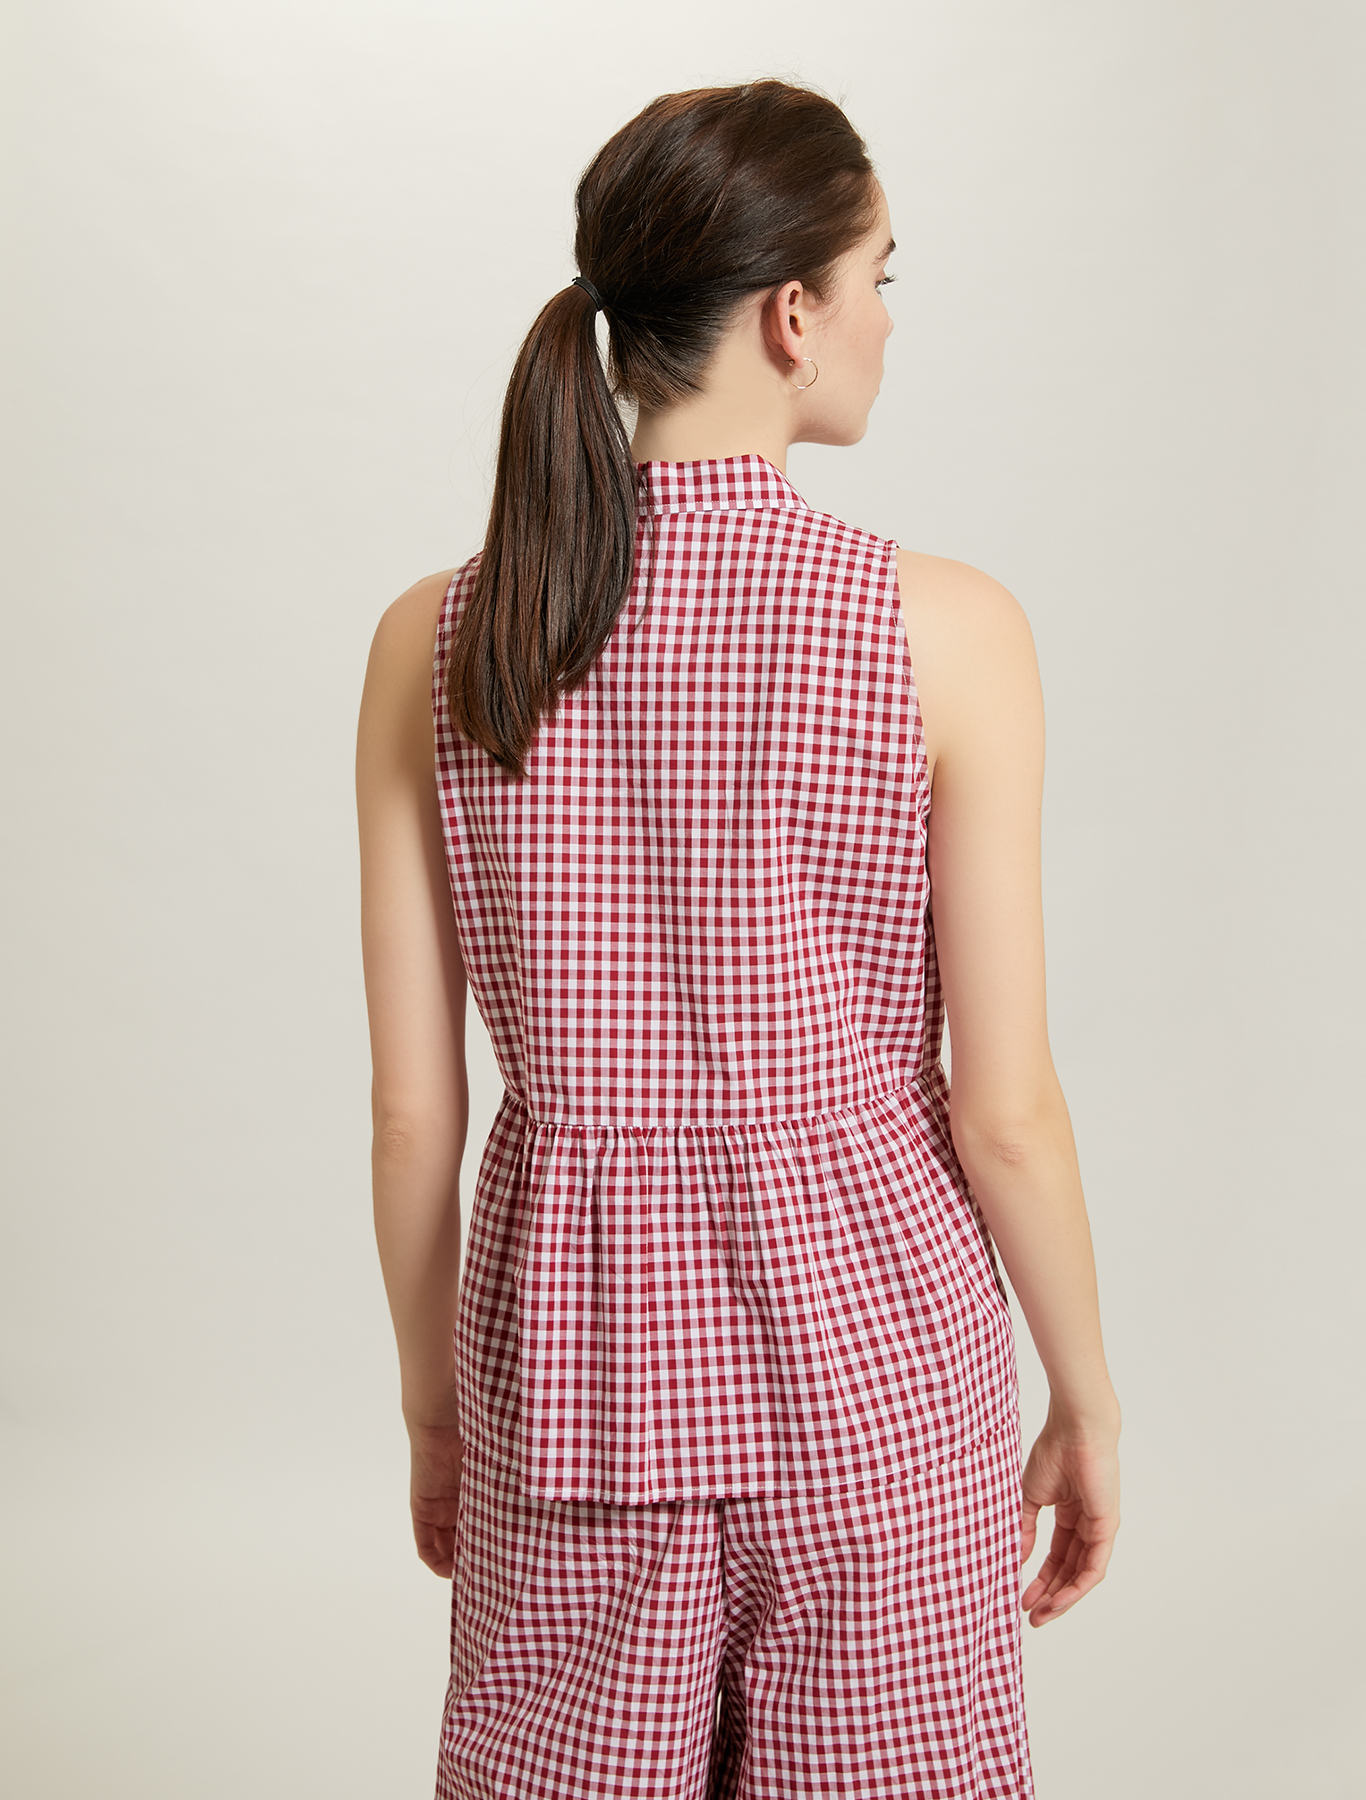 Gingham check top - fuchsia pattern - pennyblack